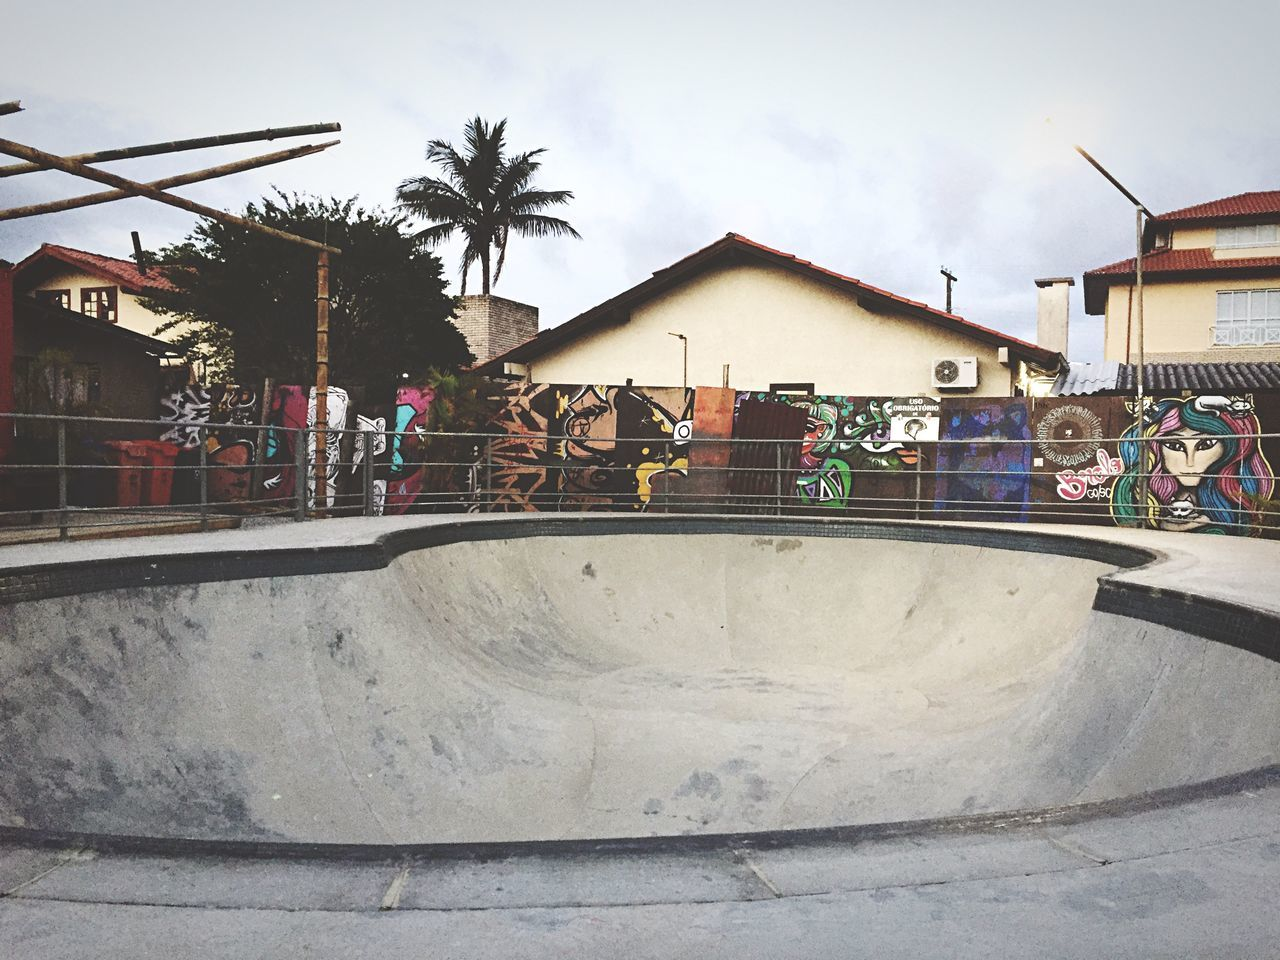 built structure, building exterior, skateboard park, architecture, skateboard, real people, sports ramp, palm tree, skill, sky, day, men, outdoors, large group of people, extreme sports, people